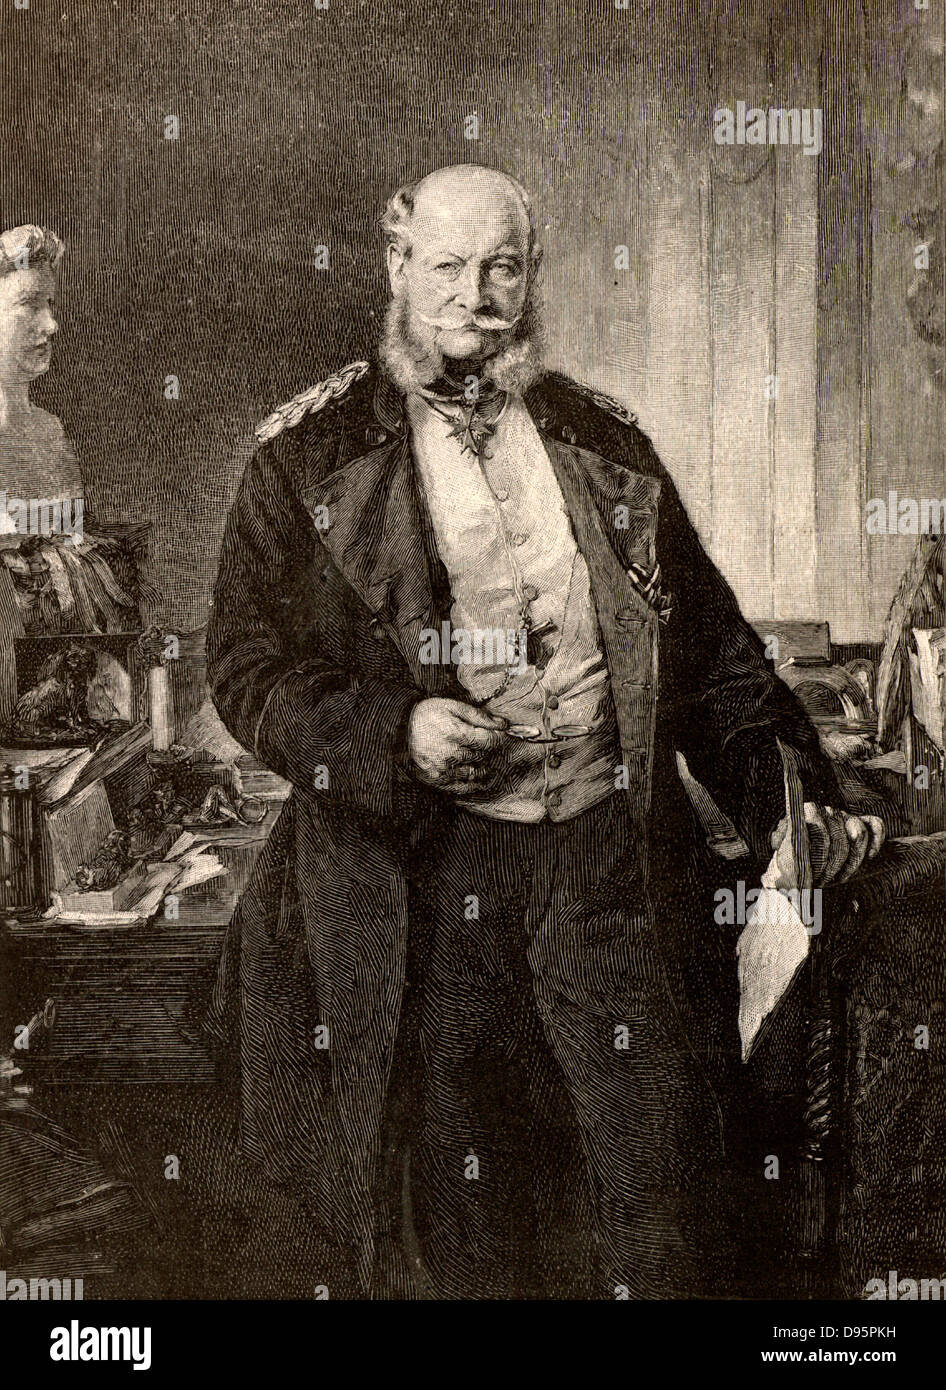 Wilhelm I (William I - 1797-1888) seventh king of Prussia and first emperor of Germany from 1861. Engraving from - Stock Image